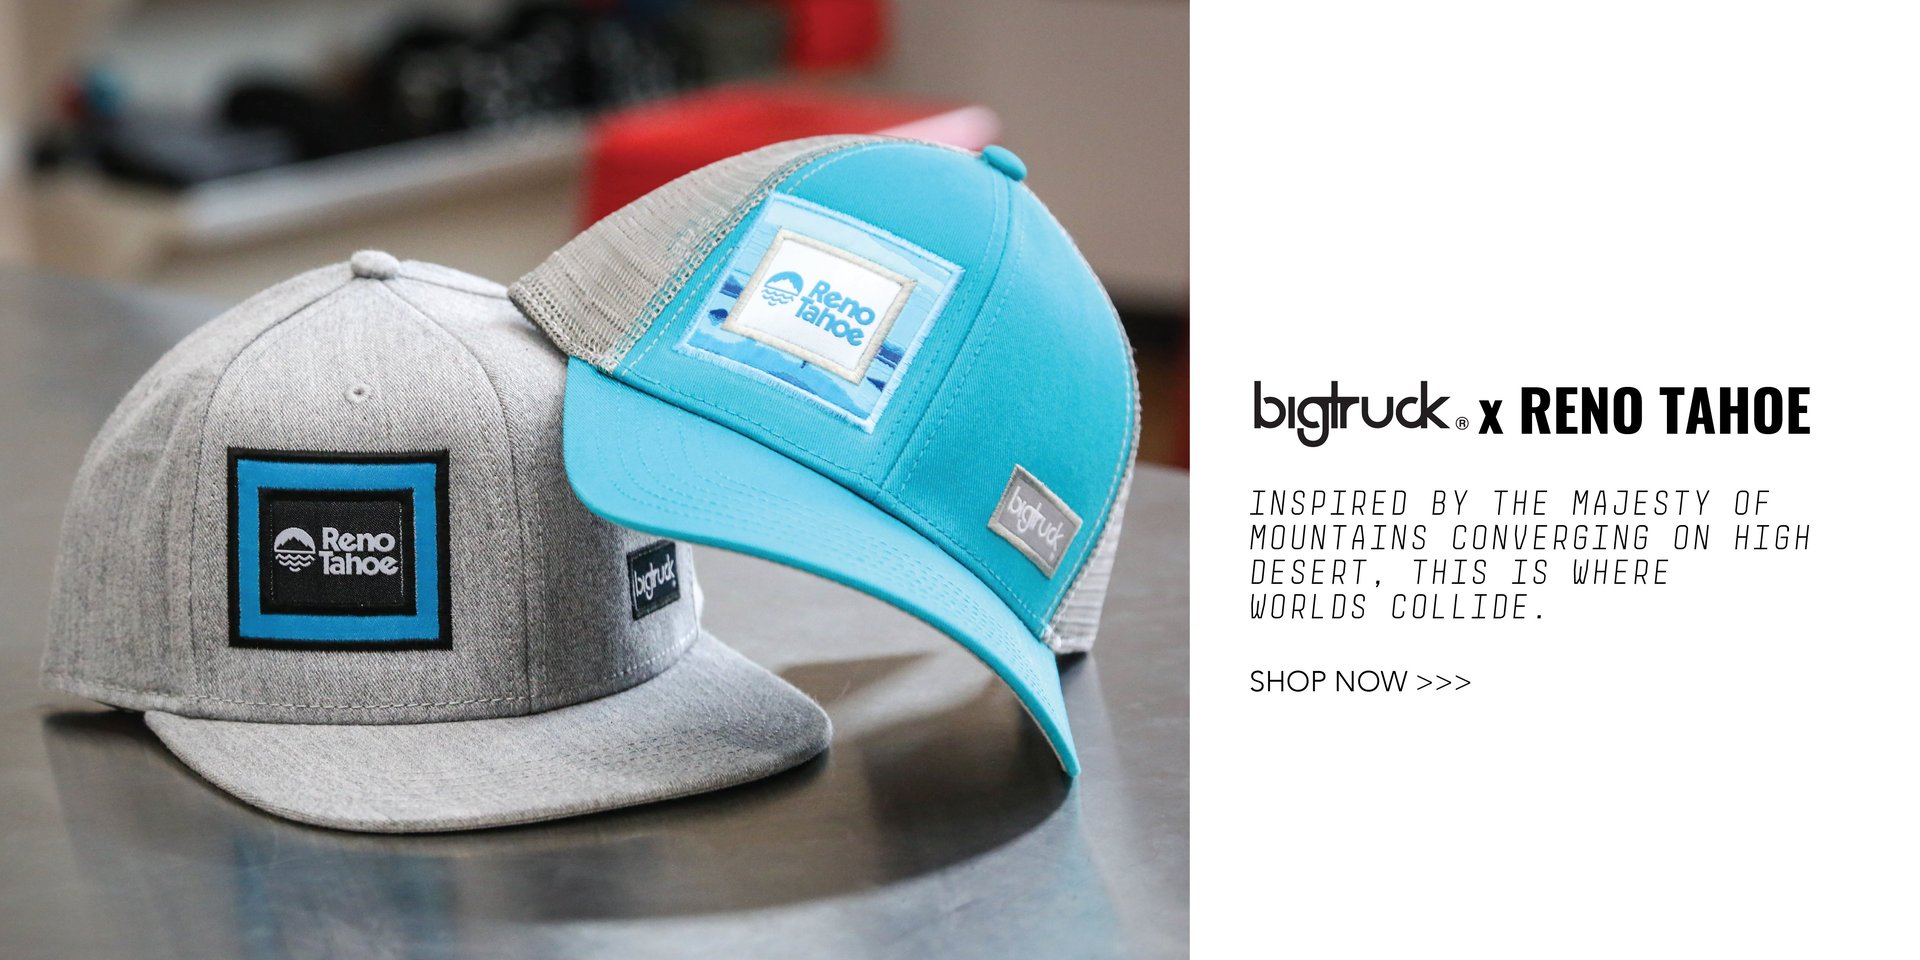 bigtruck sublimated hats